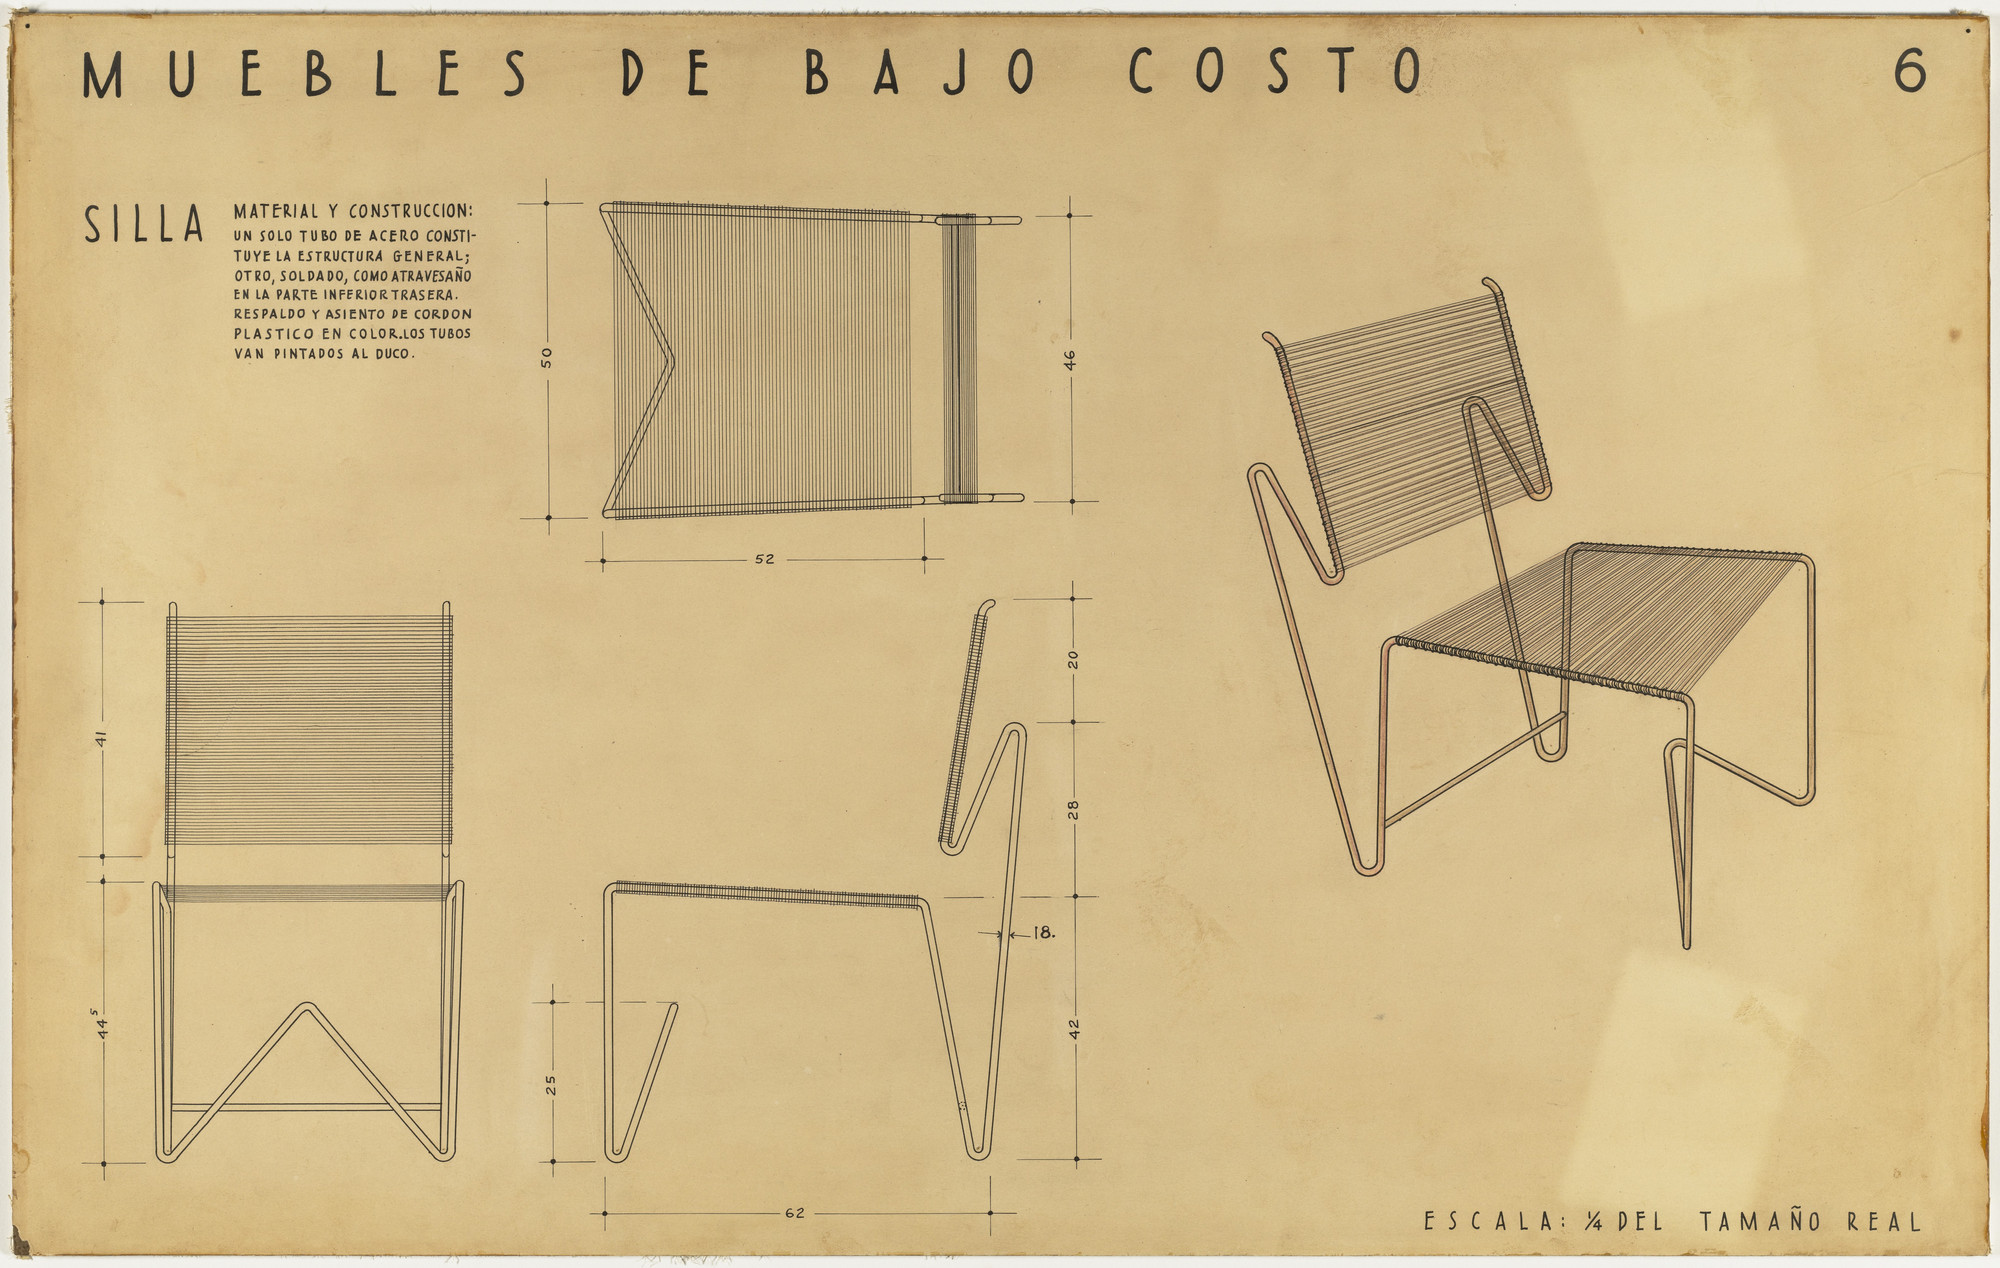 Clara Porset, Xavier Guerrero. Entry Panel for MoMA International Competition for Low-Cost Furniture Design. c.1950